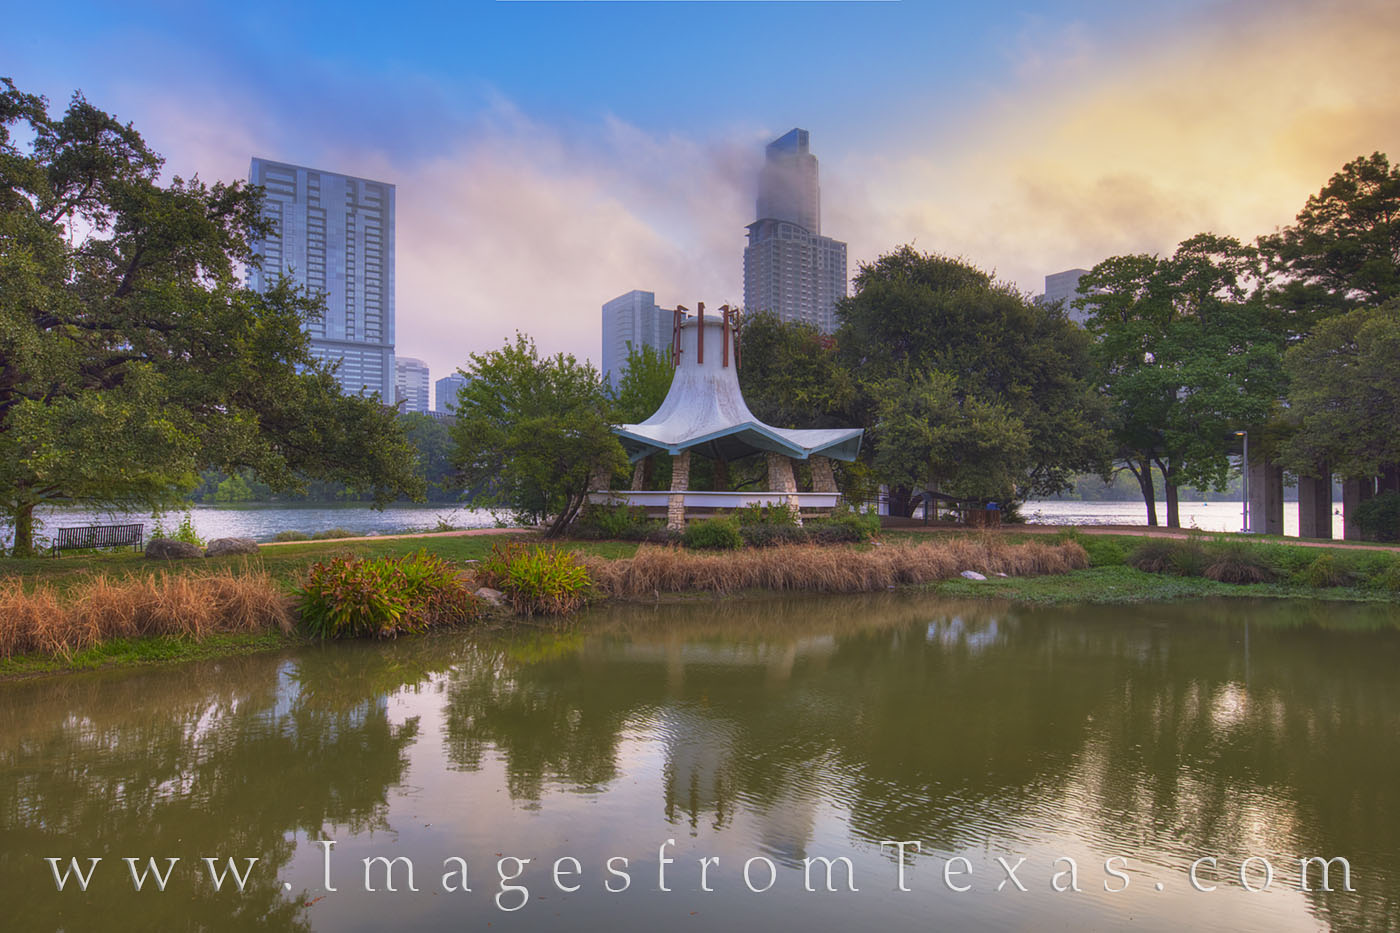 austin texas, austin skyline, austonian, lady bird lake, town lake, austin images, austin photos, photo